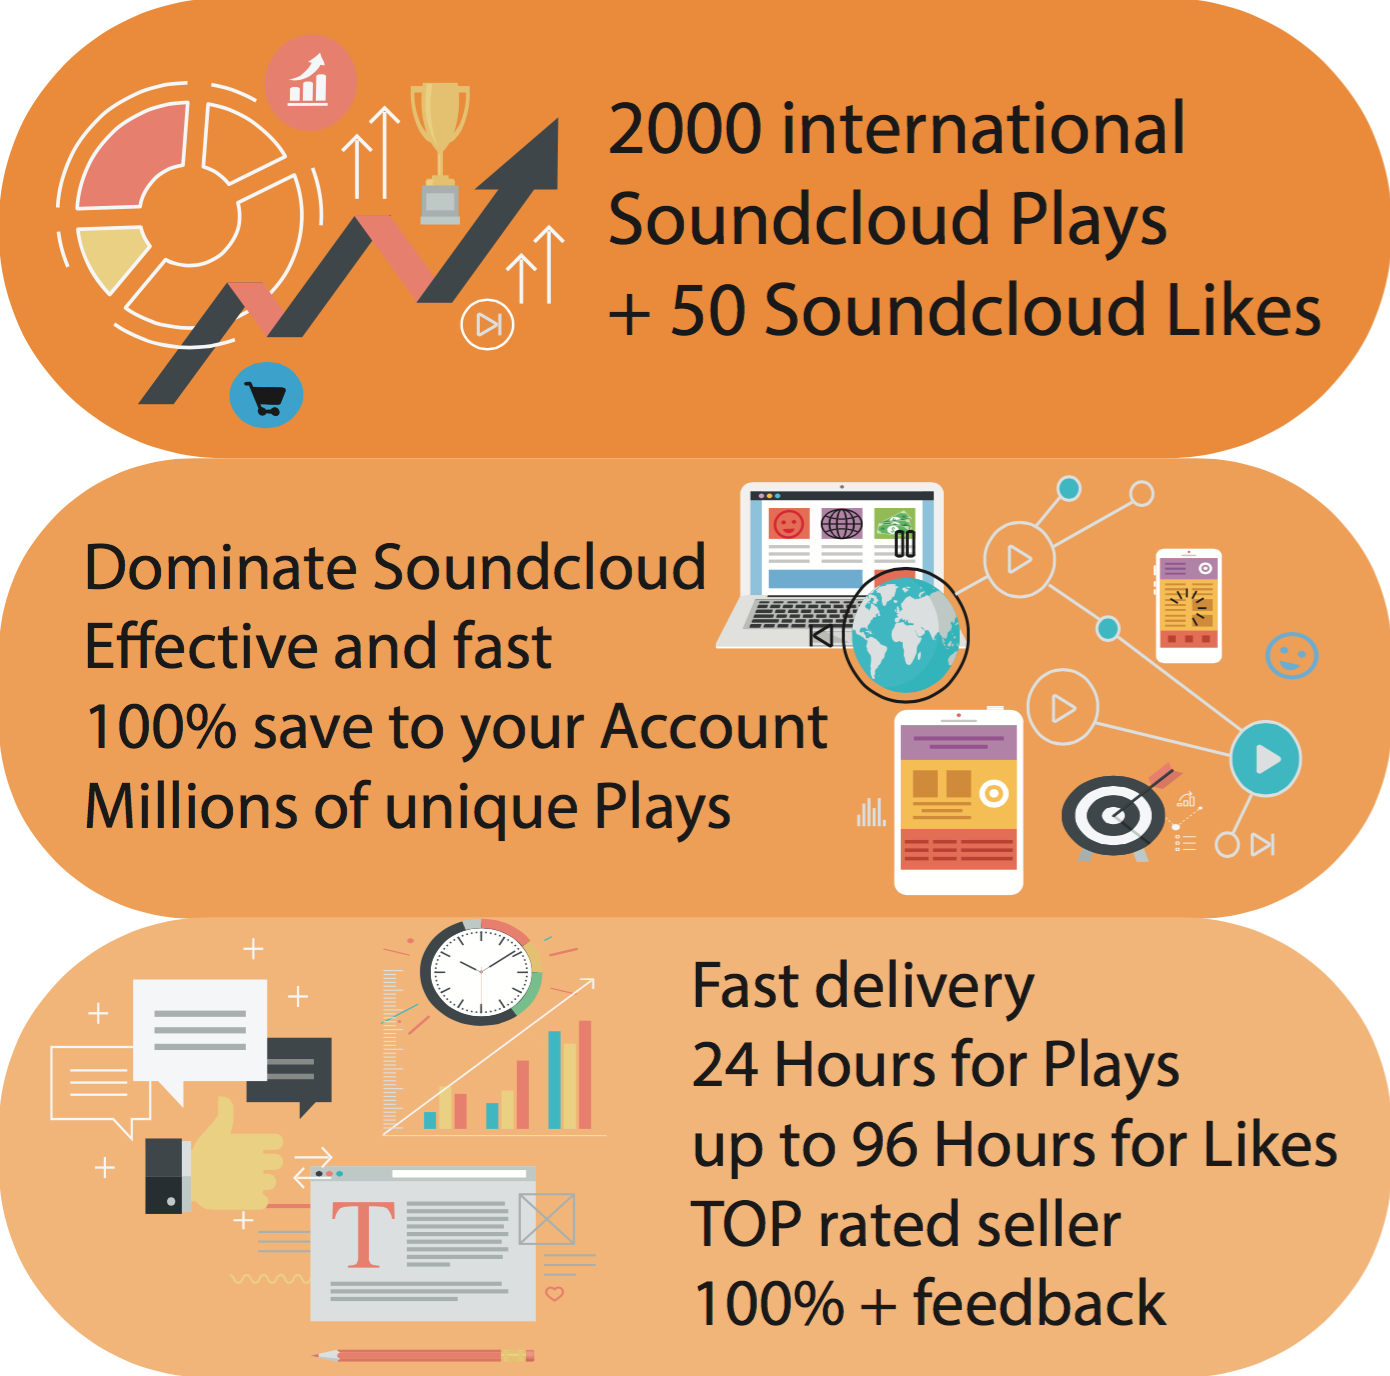 We will give you 2000 Soundcloud Plays + 50 Likes Premium Service Top rated!